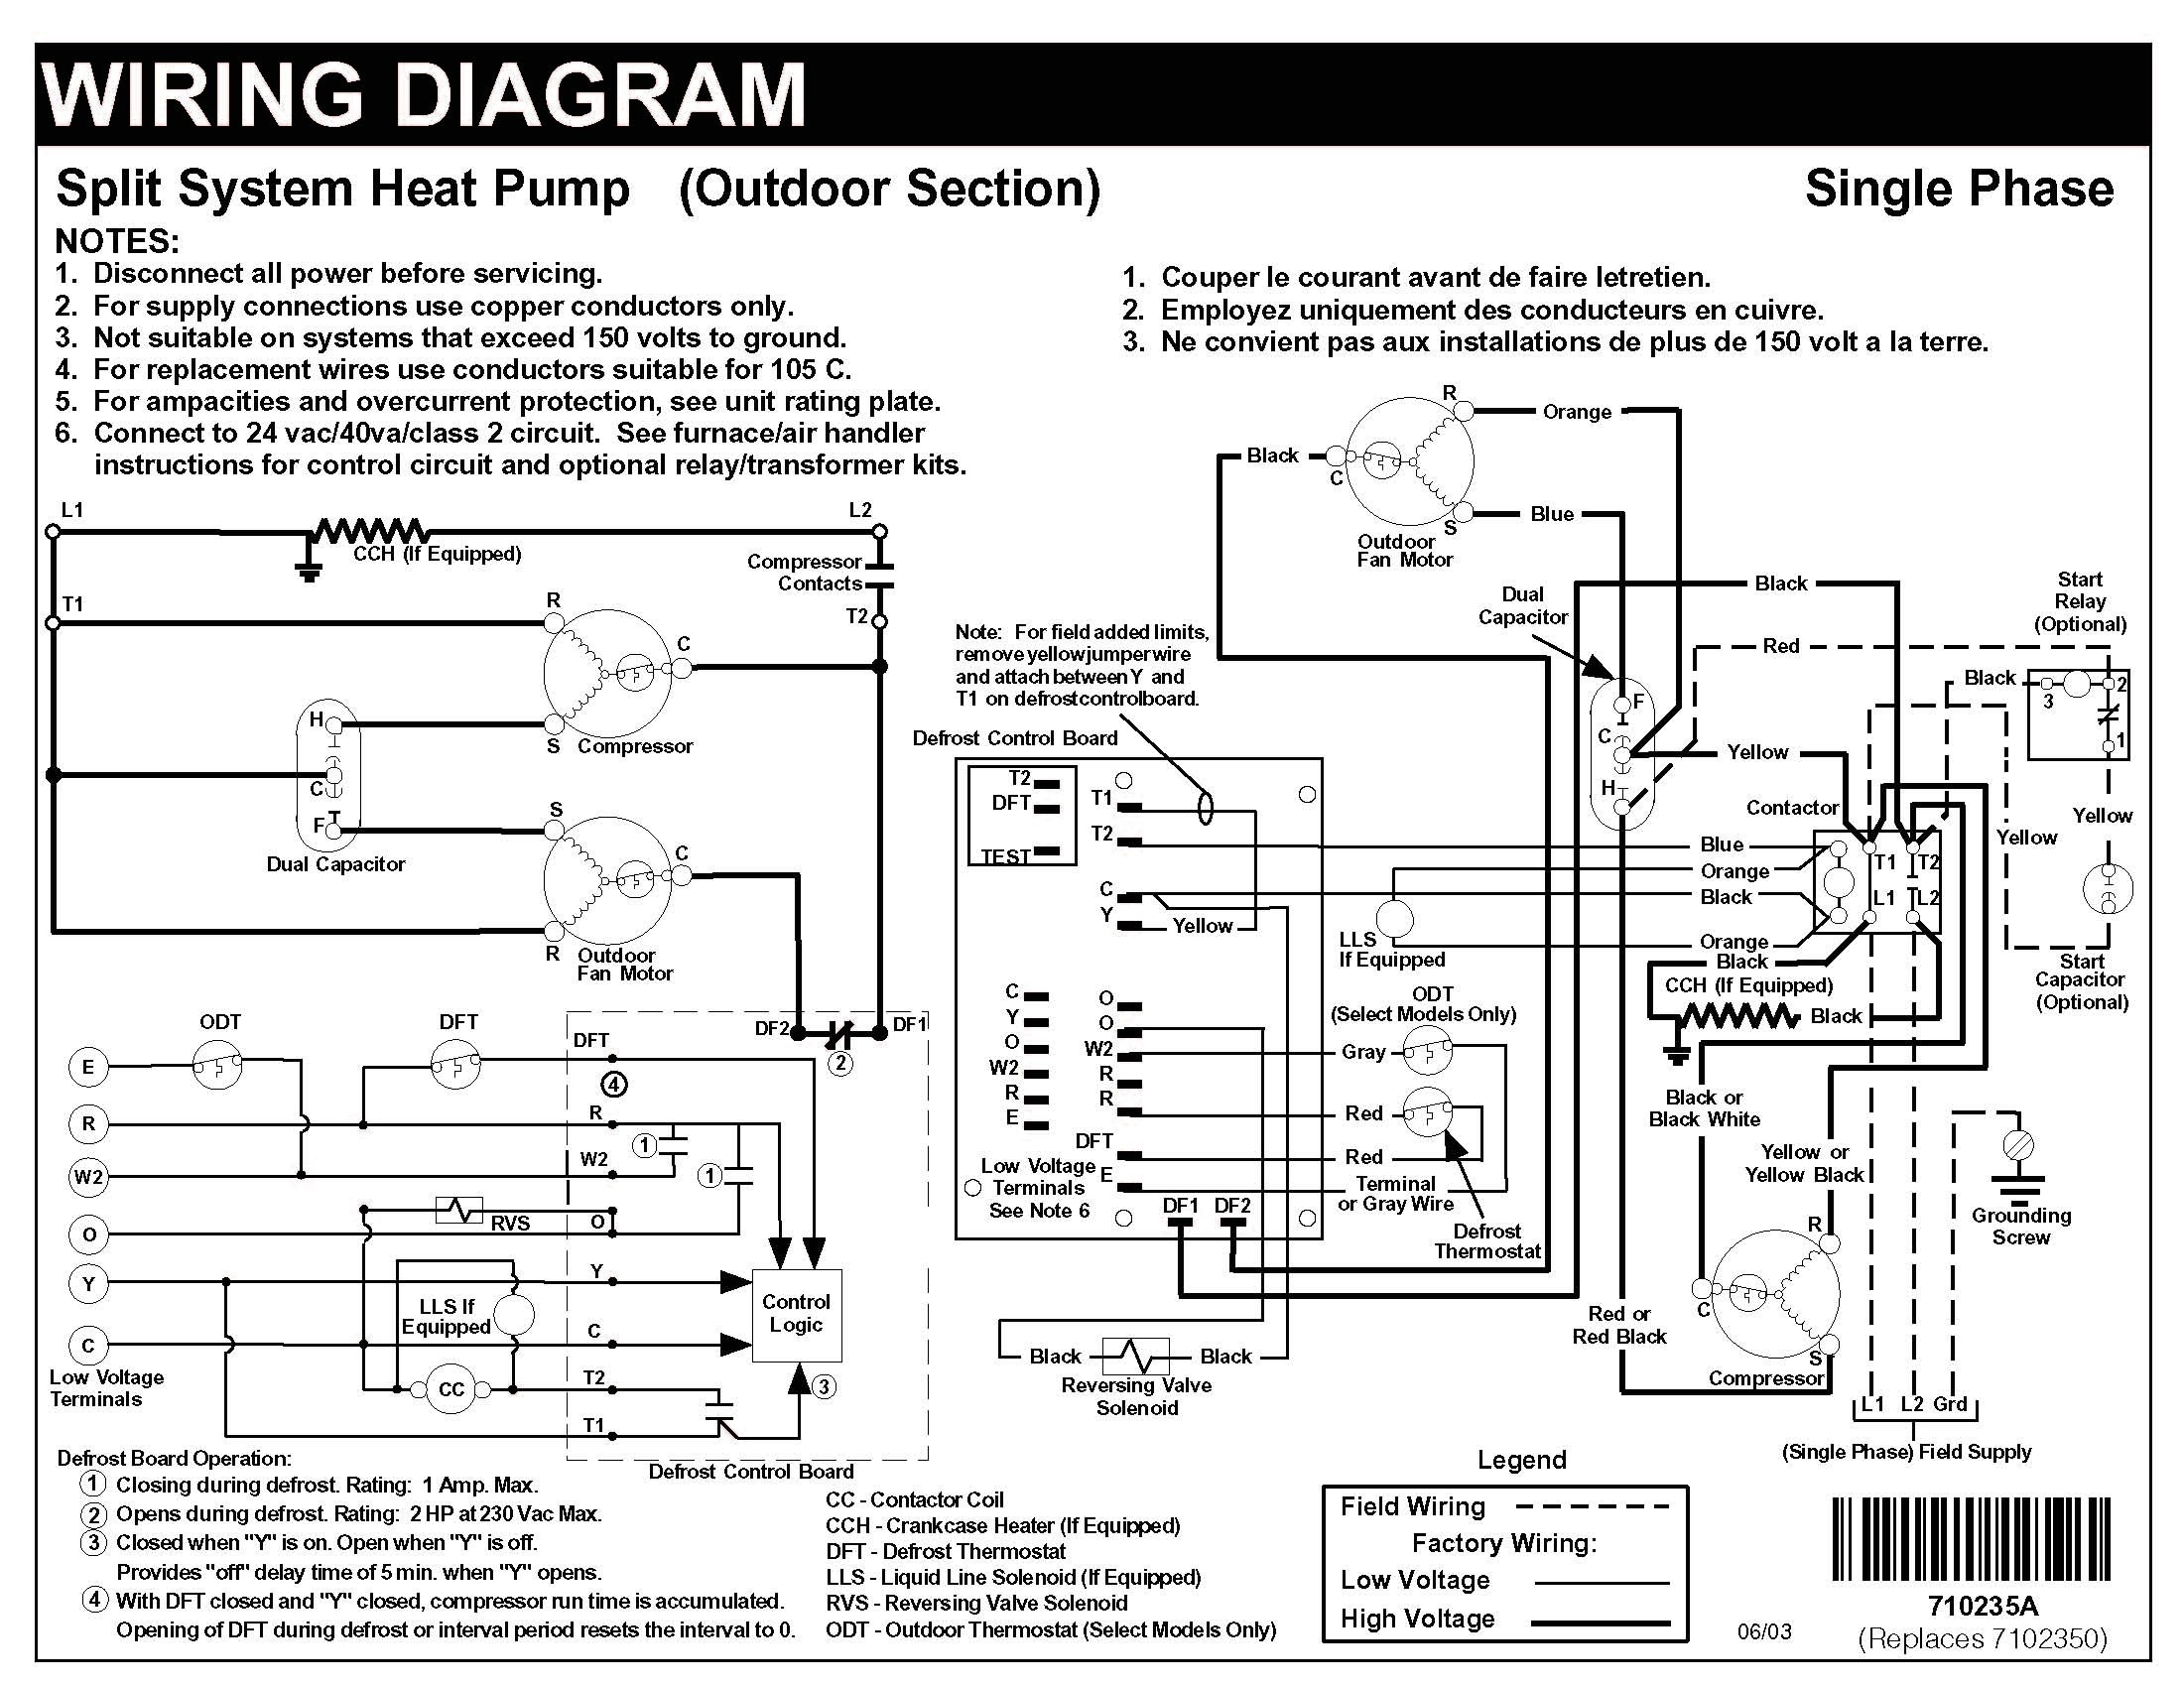 Air Conditioning Wiring Schematic